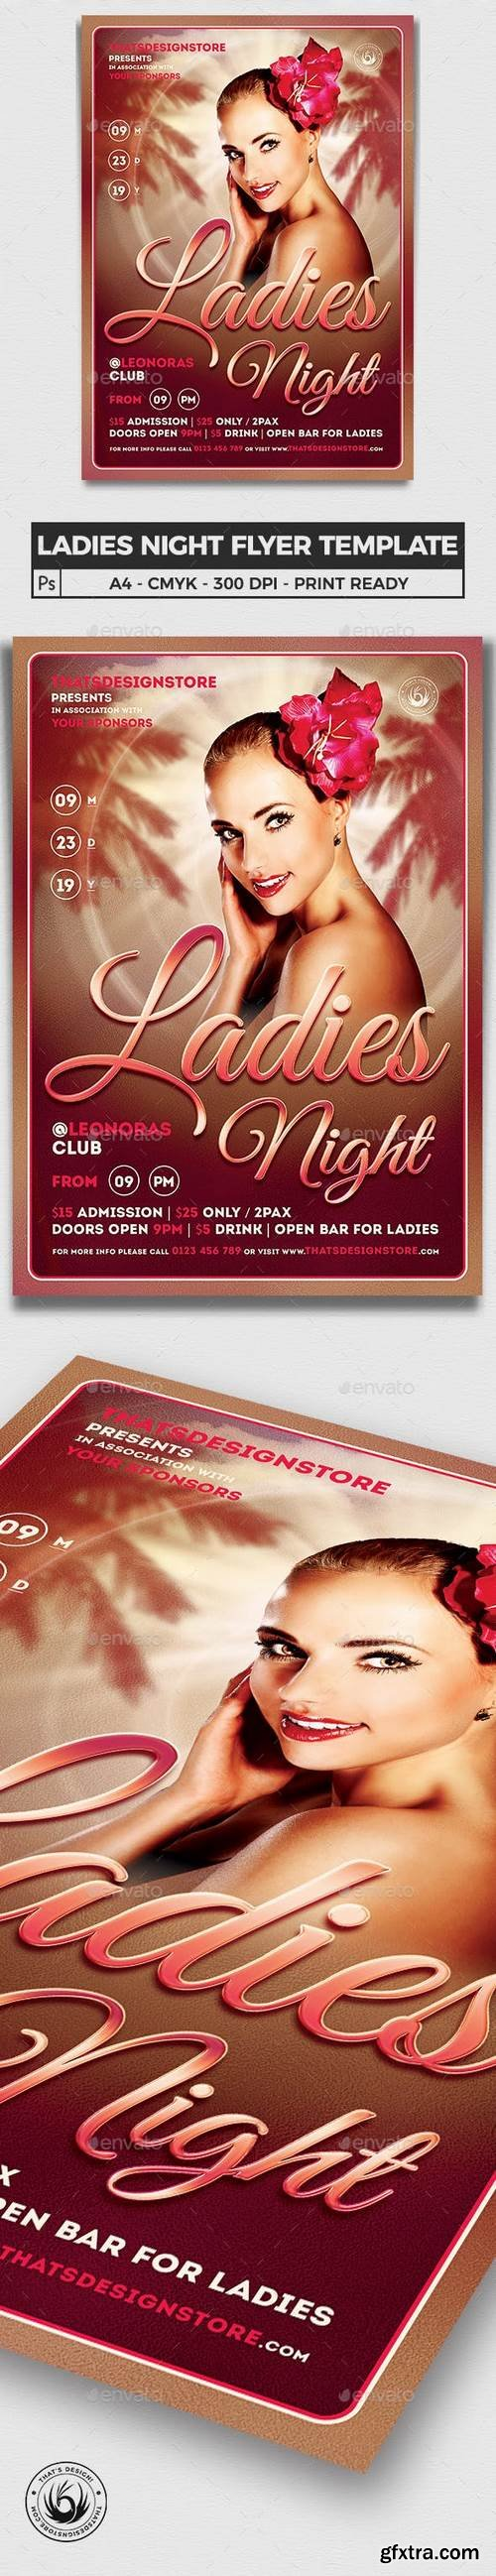 Graphicriver - Sensual Ladies Night Flyer Template 6331341- Updated !